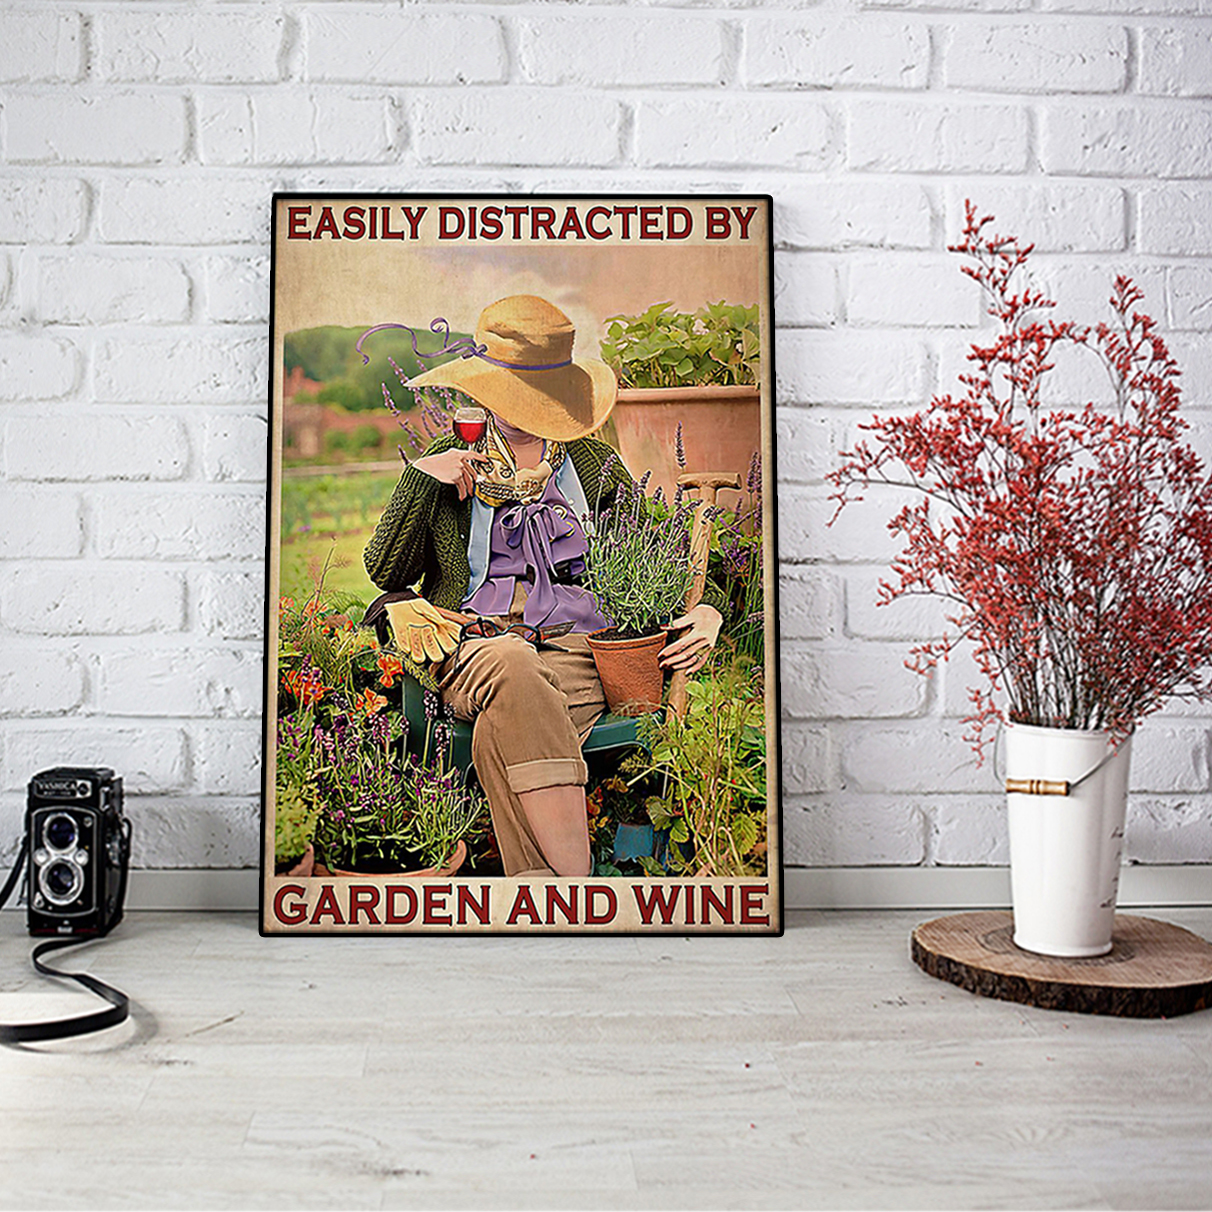 Girl easily distracted by garden and wine poster A2